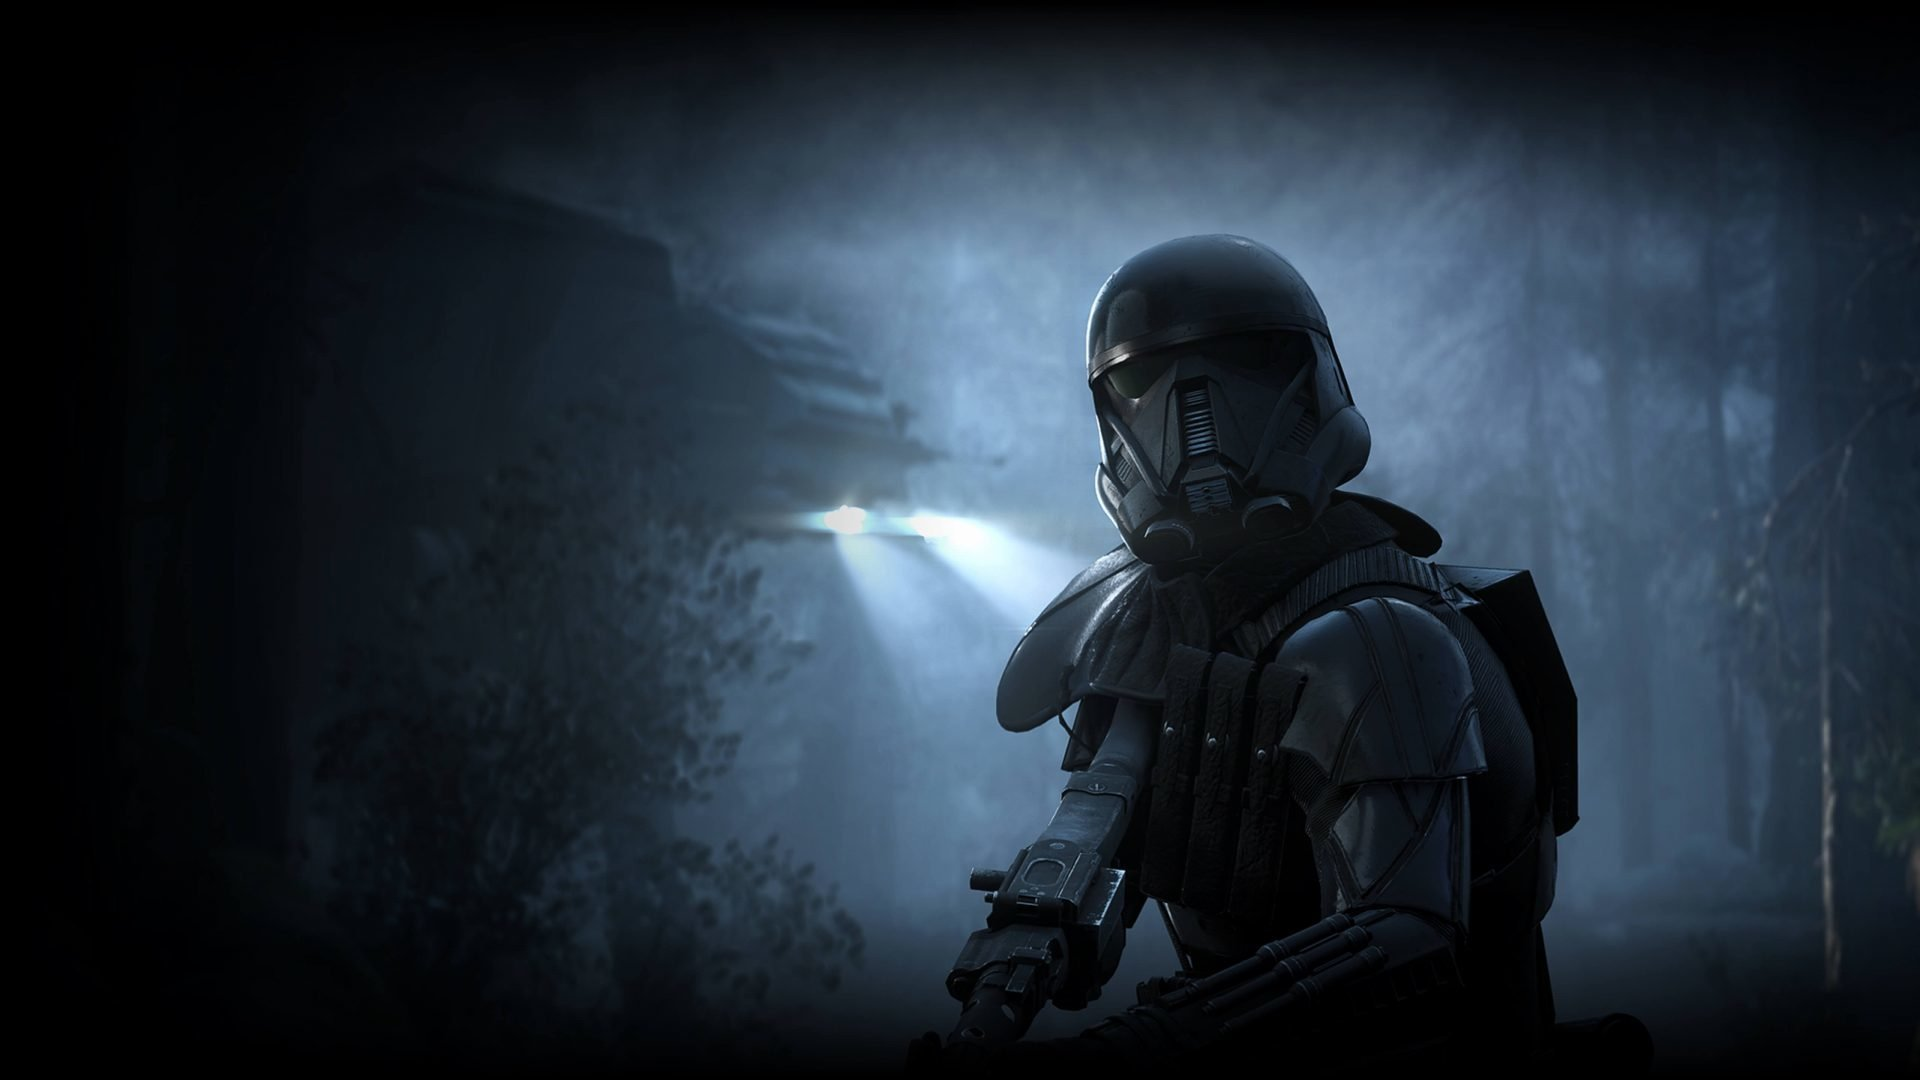 Death Trooper Battlefront 2 1920x1080 Download Hd Wallpaper Wallpapertip